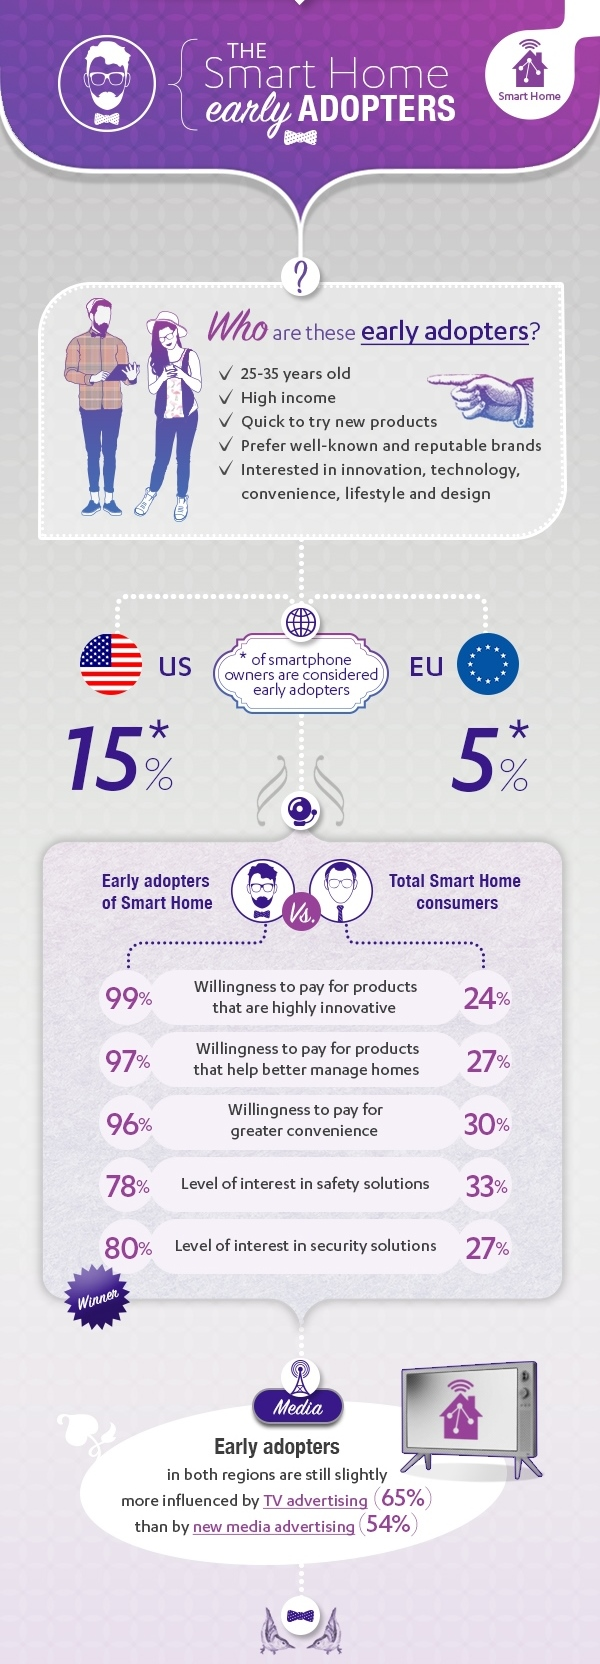 Smart Home Early Adopters Essence 2016